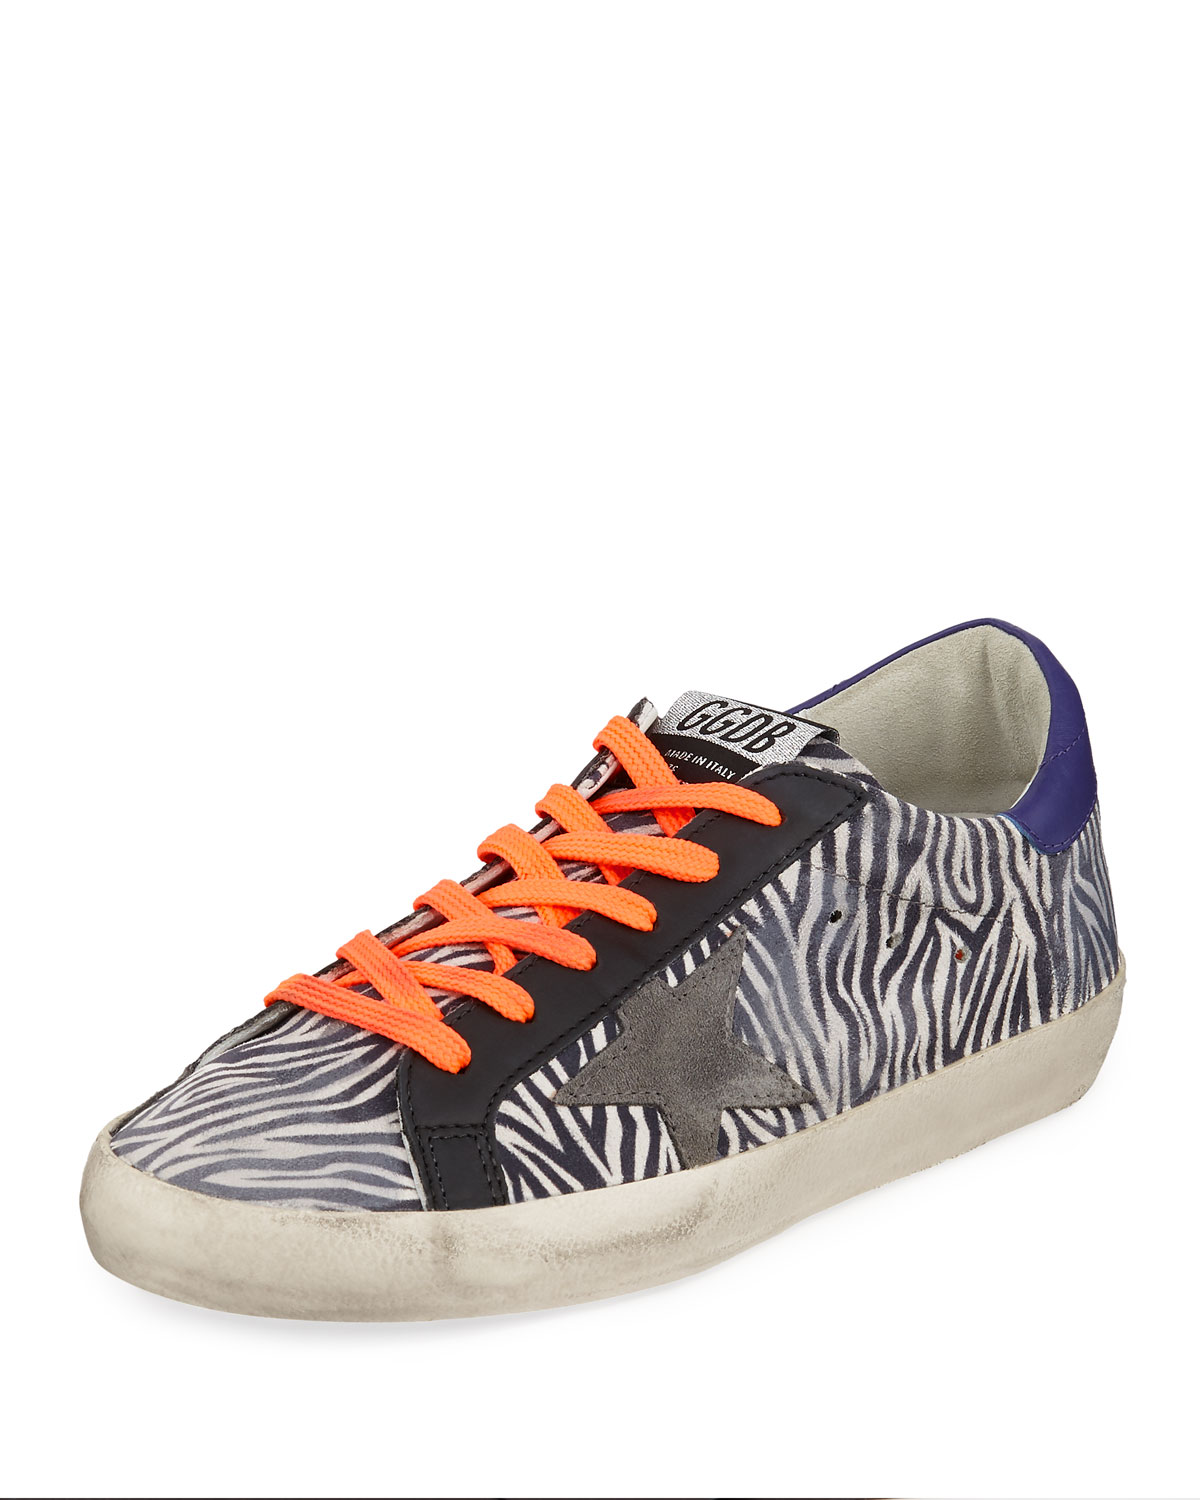 Golden Goose Superstar Zebra Low-Top Sneakers